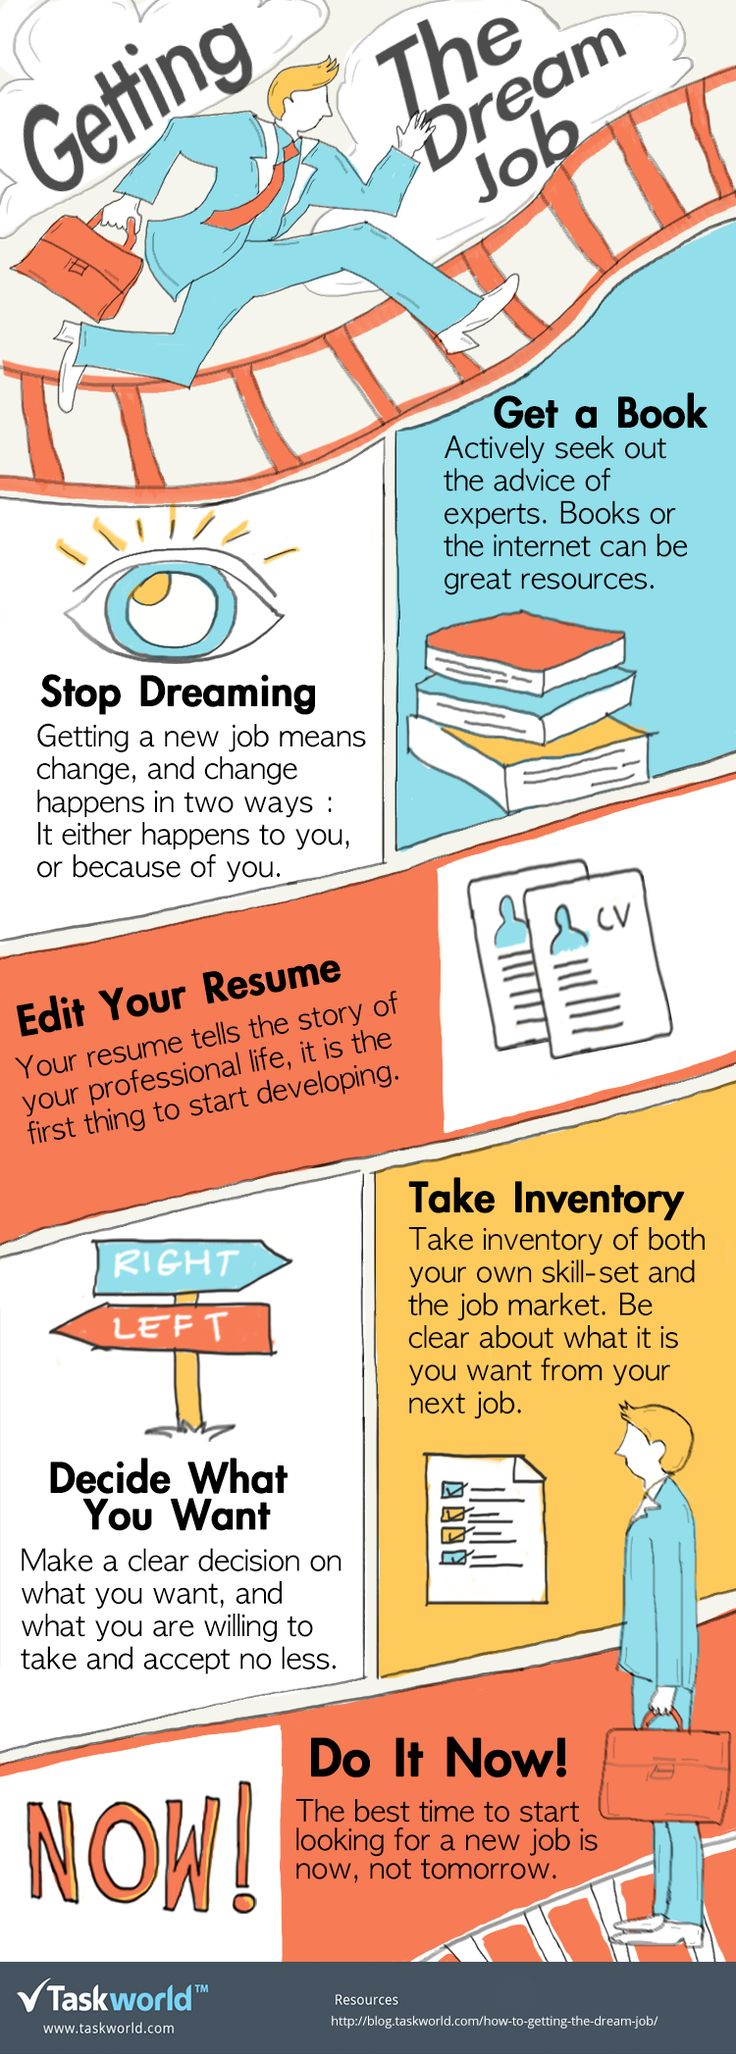 Getting The Dream Job Infographic - http://elearninginfographics.com/getting-dream-job-infographic/